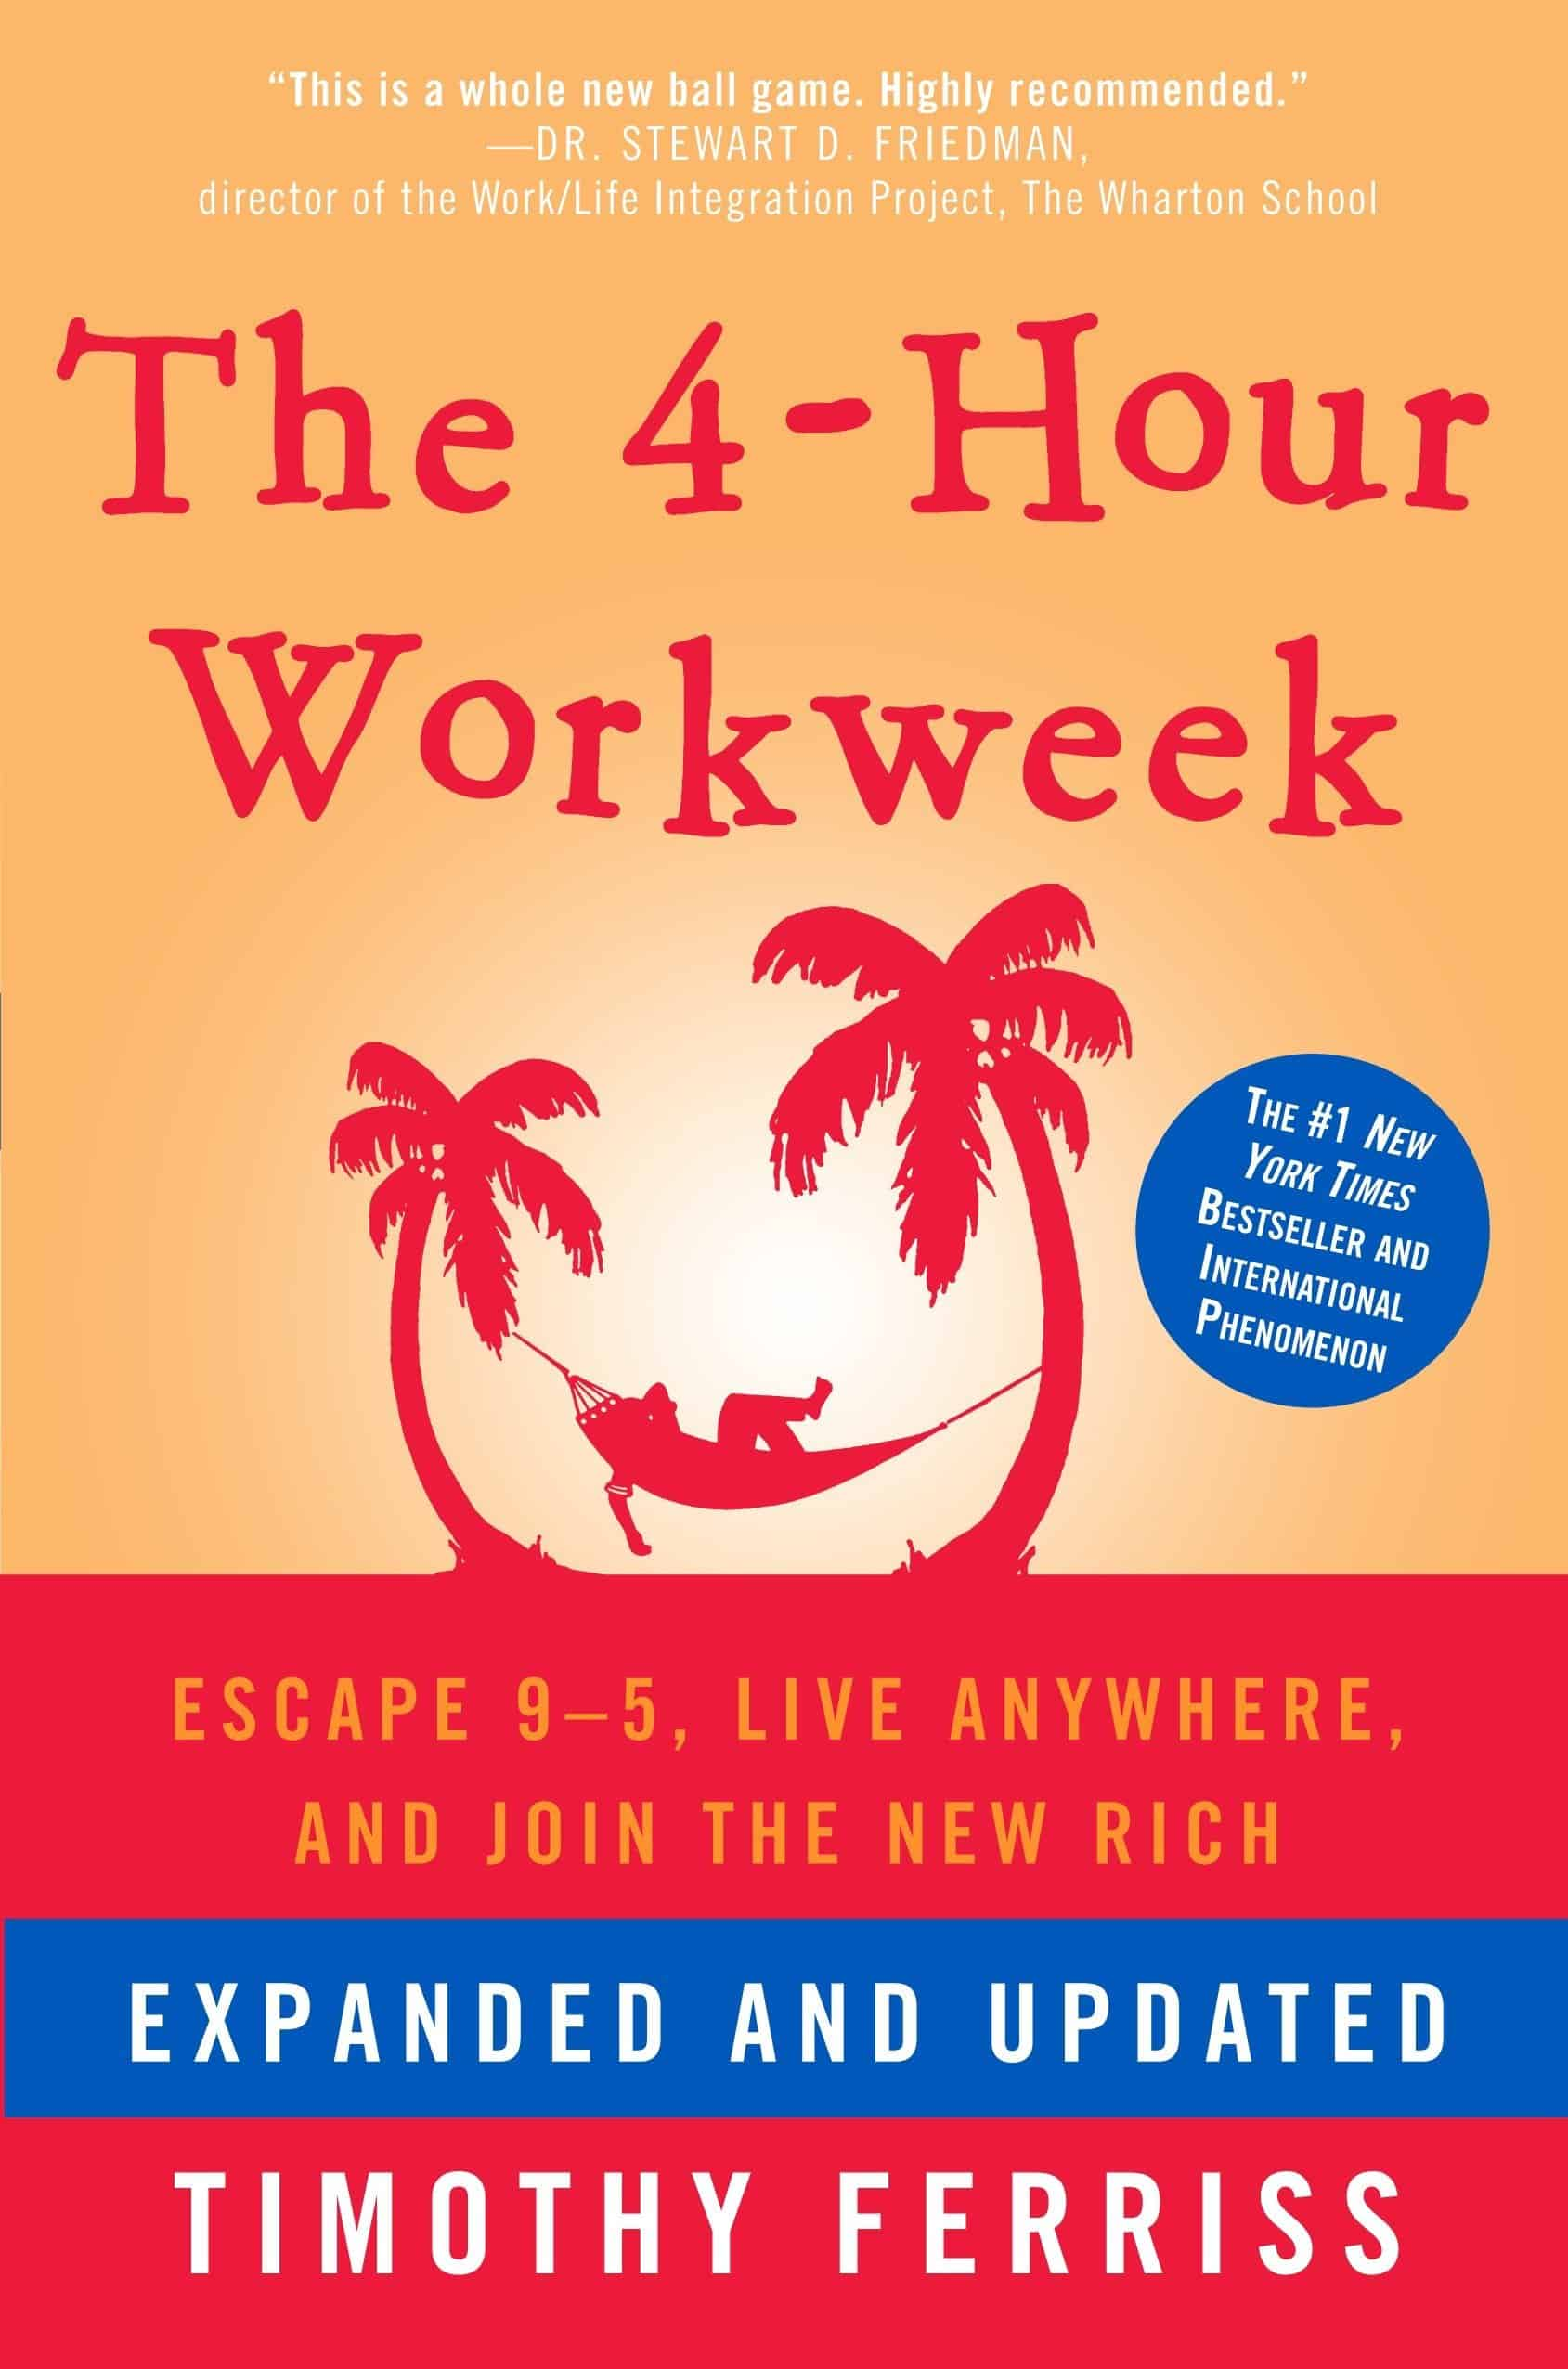 the 4-hour workweek review freenancial exposed